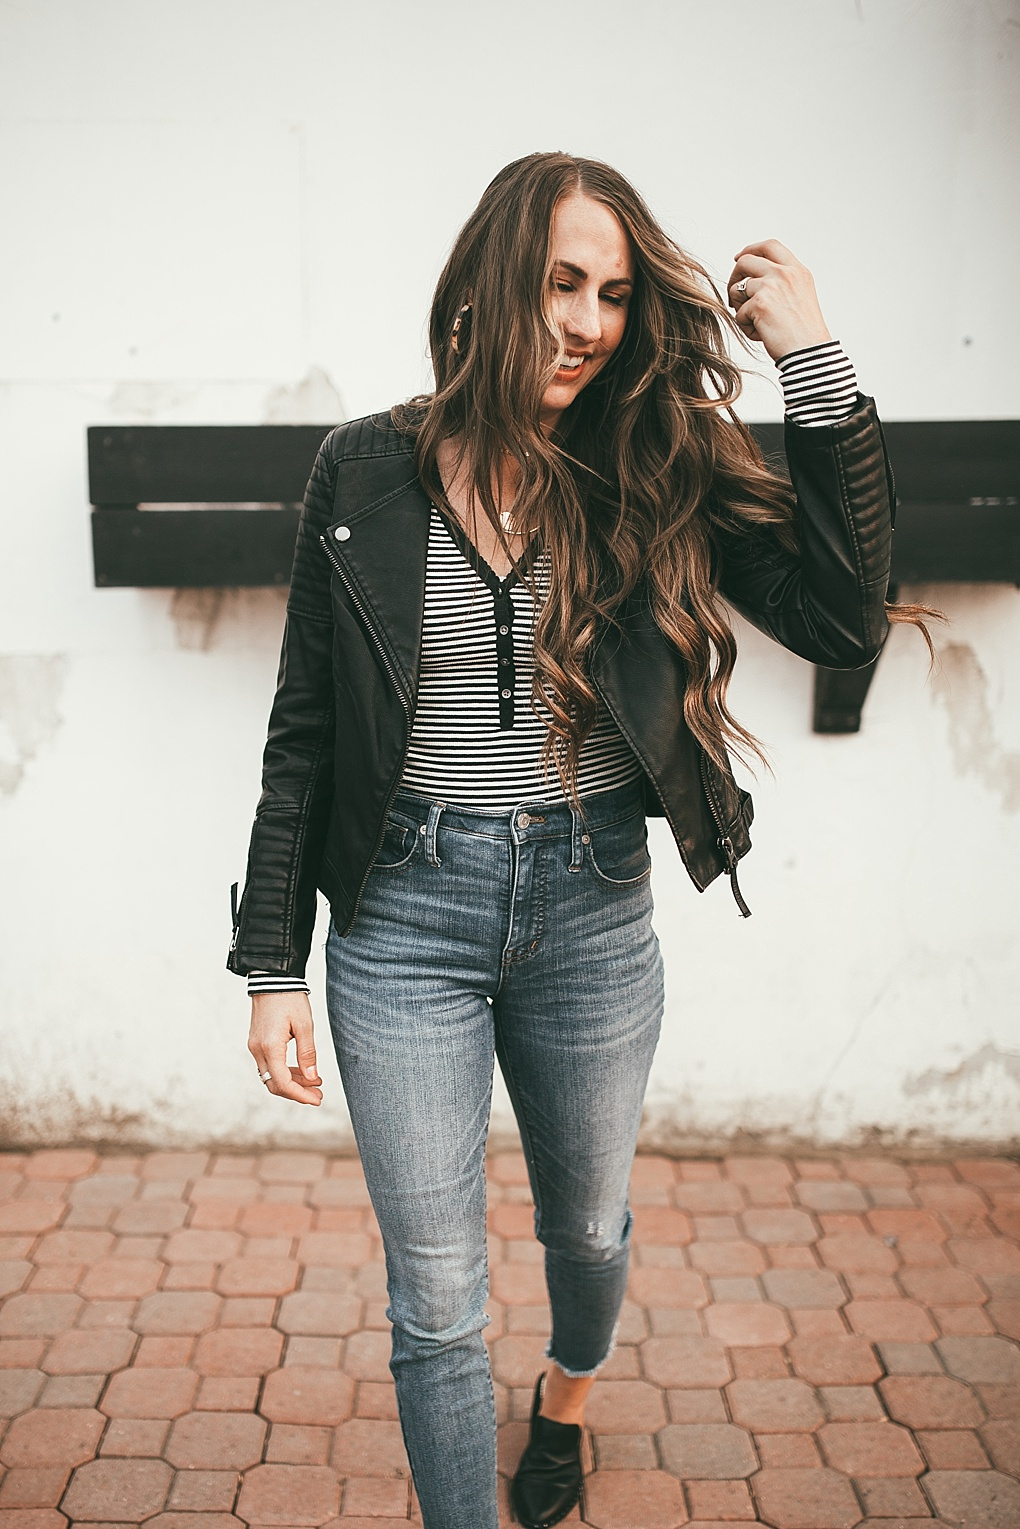 Fall is coming, which of course means time to break out the fall essentials. Utah Style Blogger Dani Marie is sharing her top fall essentials!